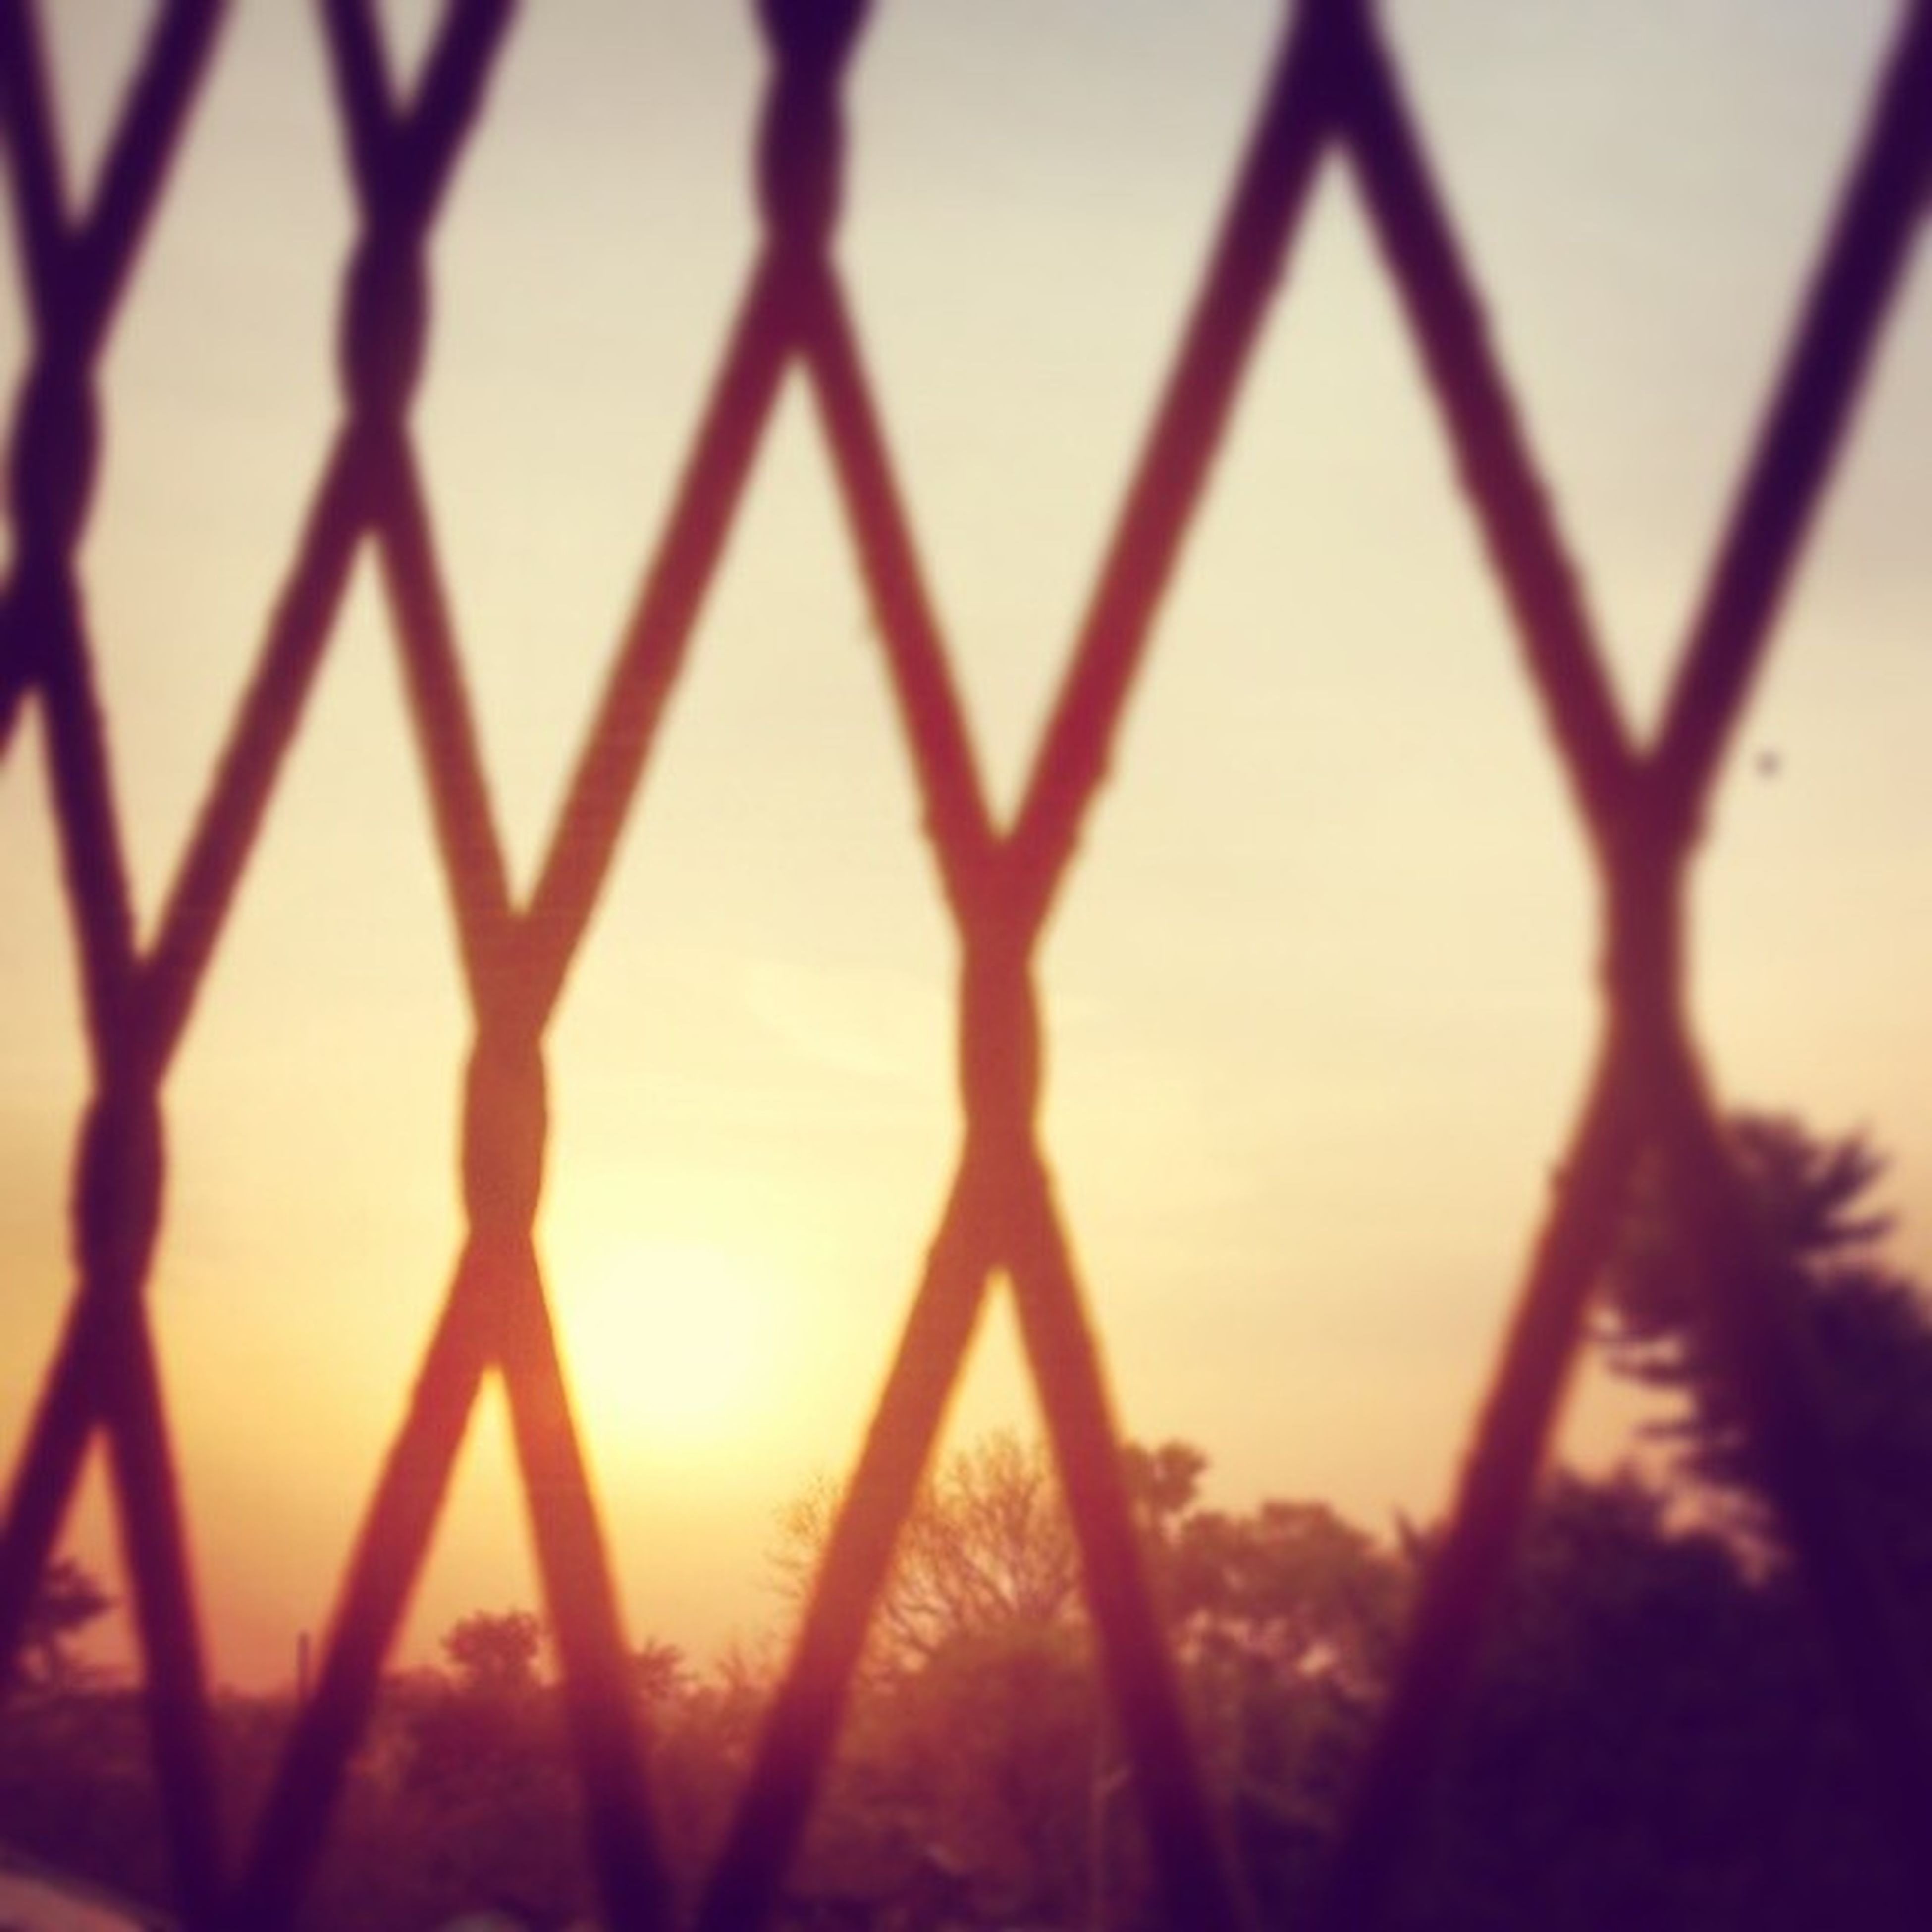 sunset, fence, metal, orange color, protection, chainlink fence, safety, sky, sun, silhouette, sunlight, focus on foreground, security, metallic, close-up, nature, tranquility, no people, outdoors, beauty in nature